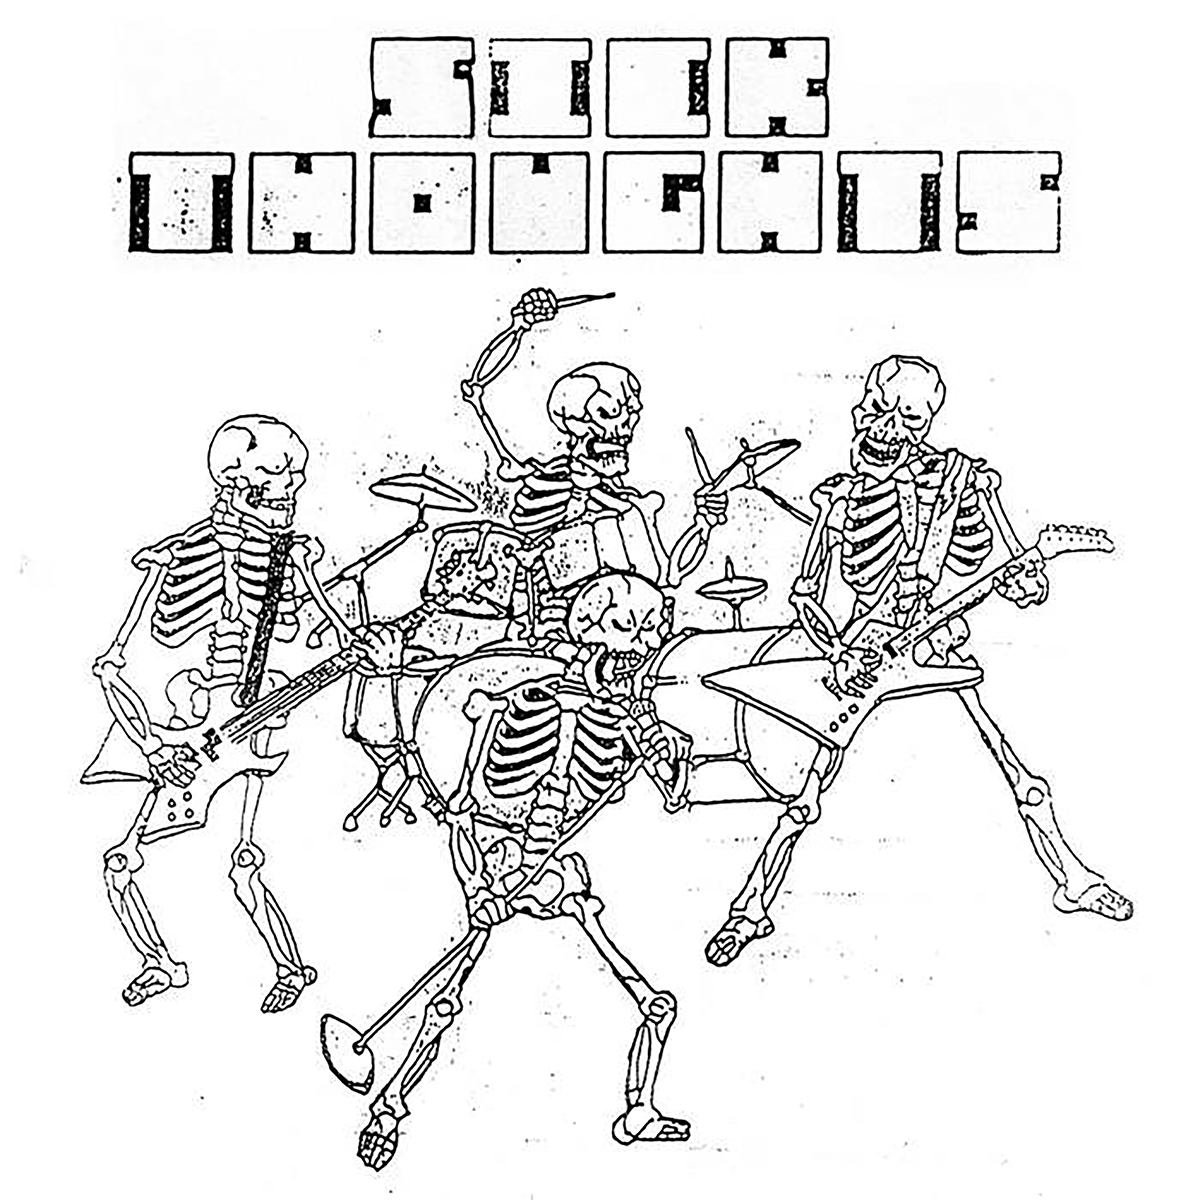 """Album cover for Poor Boys / Drug Rock by Sick Thoughts. It's a black and white illustration of skeletons playing music. There are 4 skeletons: a singer, a guitarist, a bassist, and a drummer. They all have angry expressions, like they're angrily jamming. At the top reads """"Sick Thoughts"""" in blocky letters."""